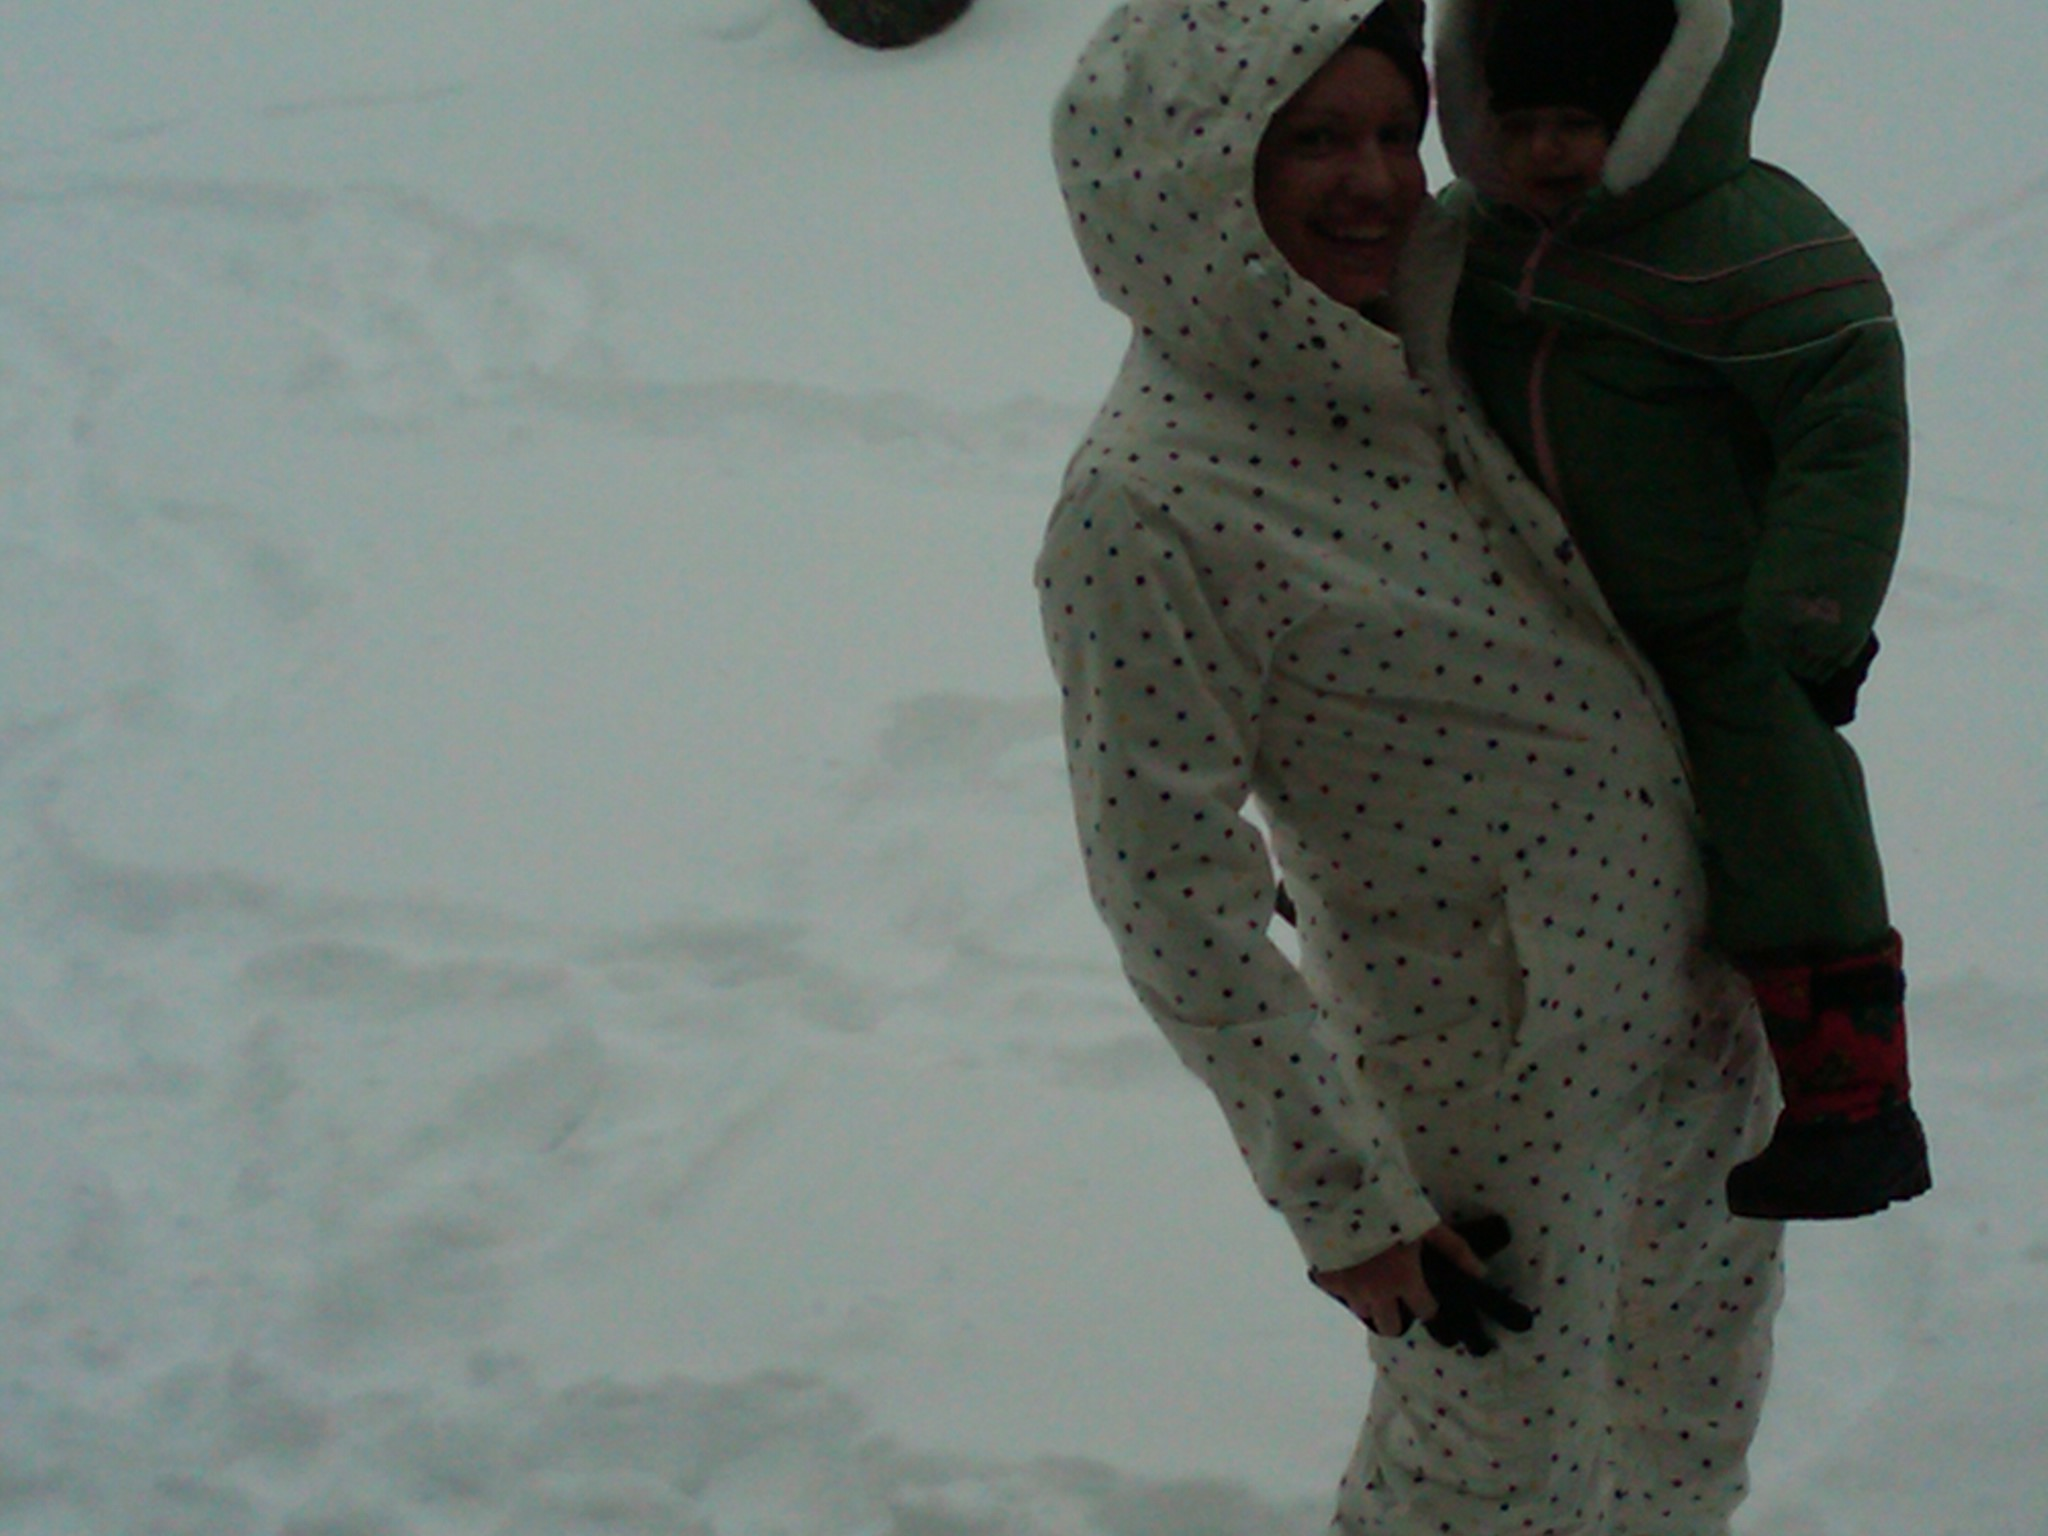 Snowsuit time!